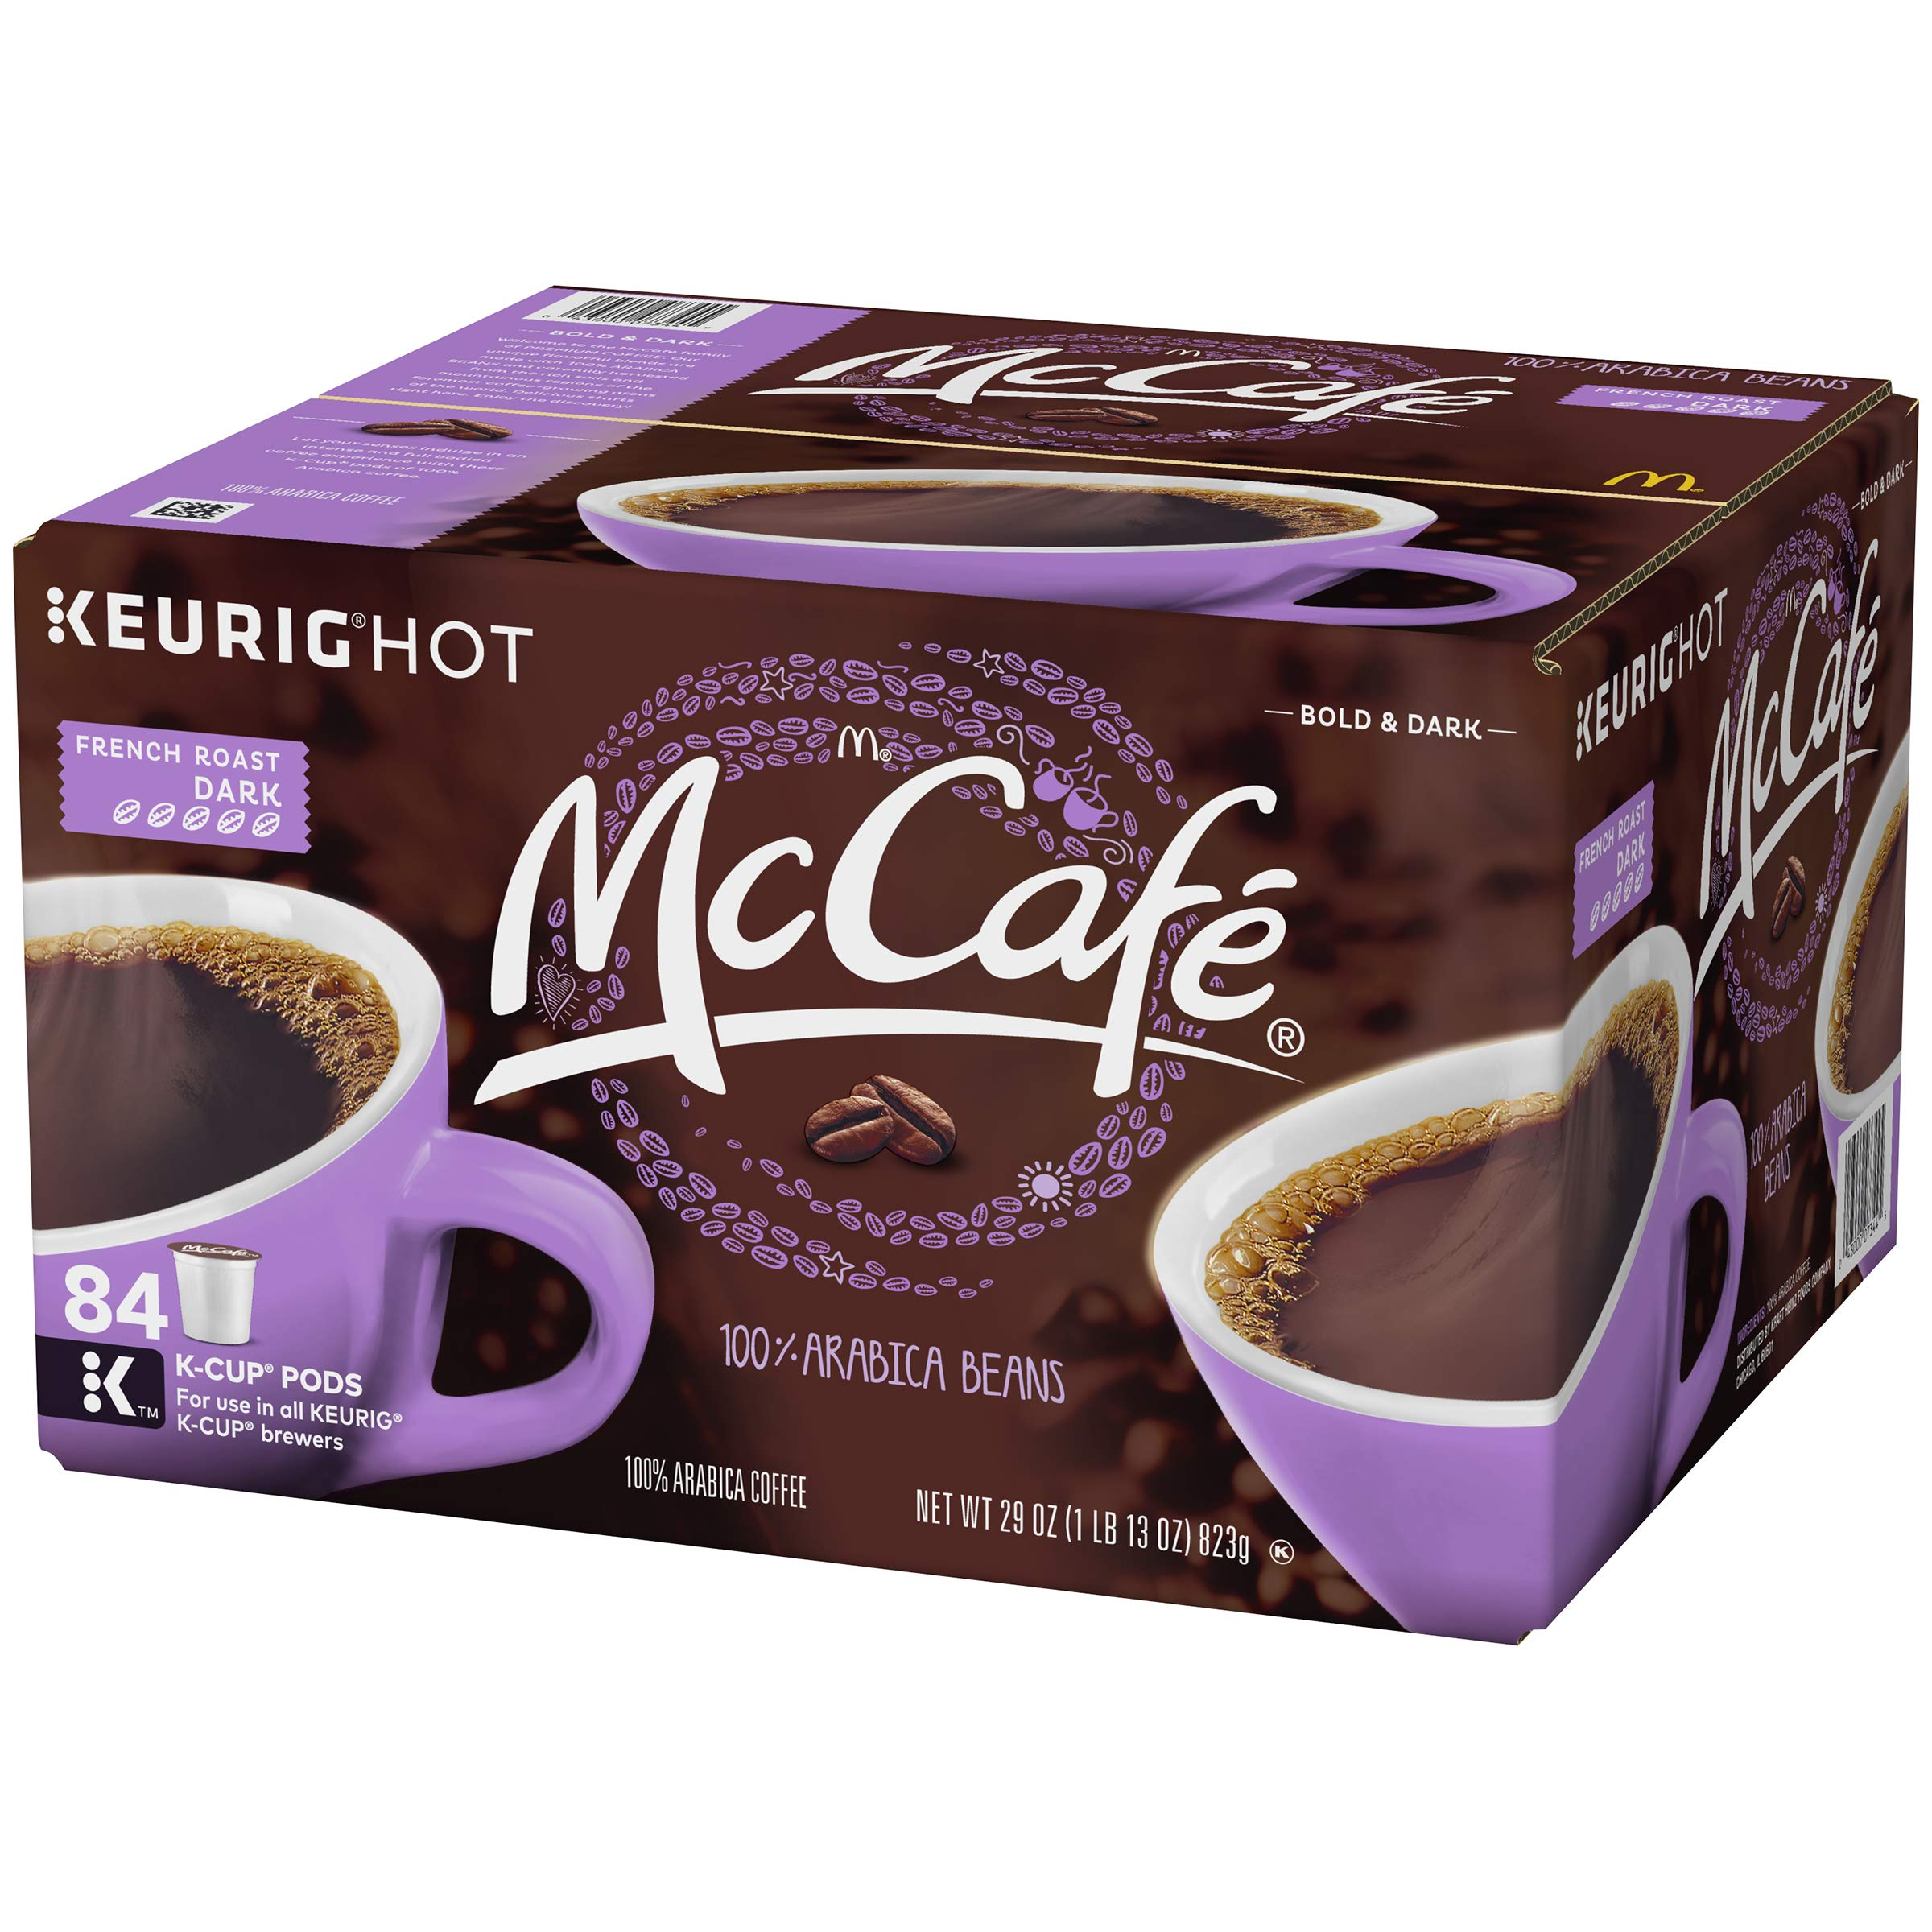 McCafe French Roast Keurig K Cup Coffee Pods (84 Count) by McCafe (Image #4)